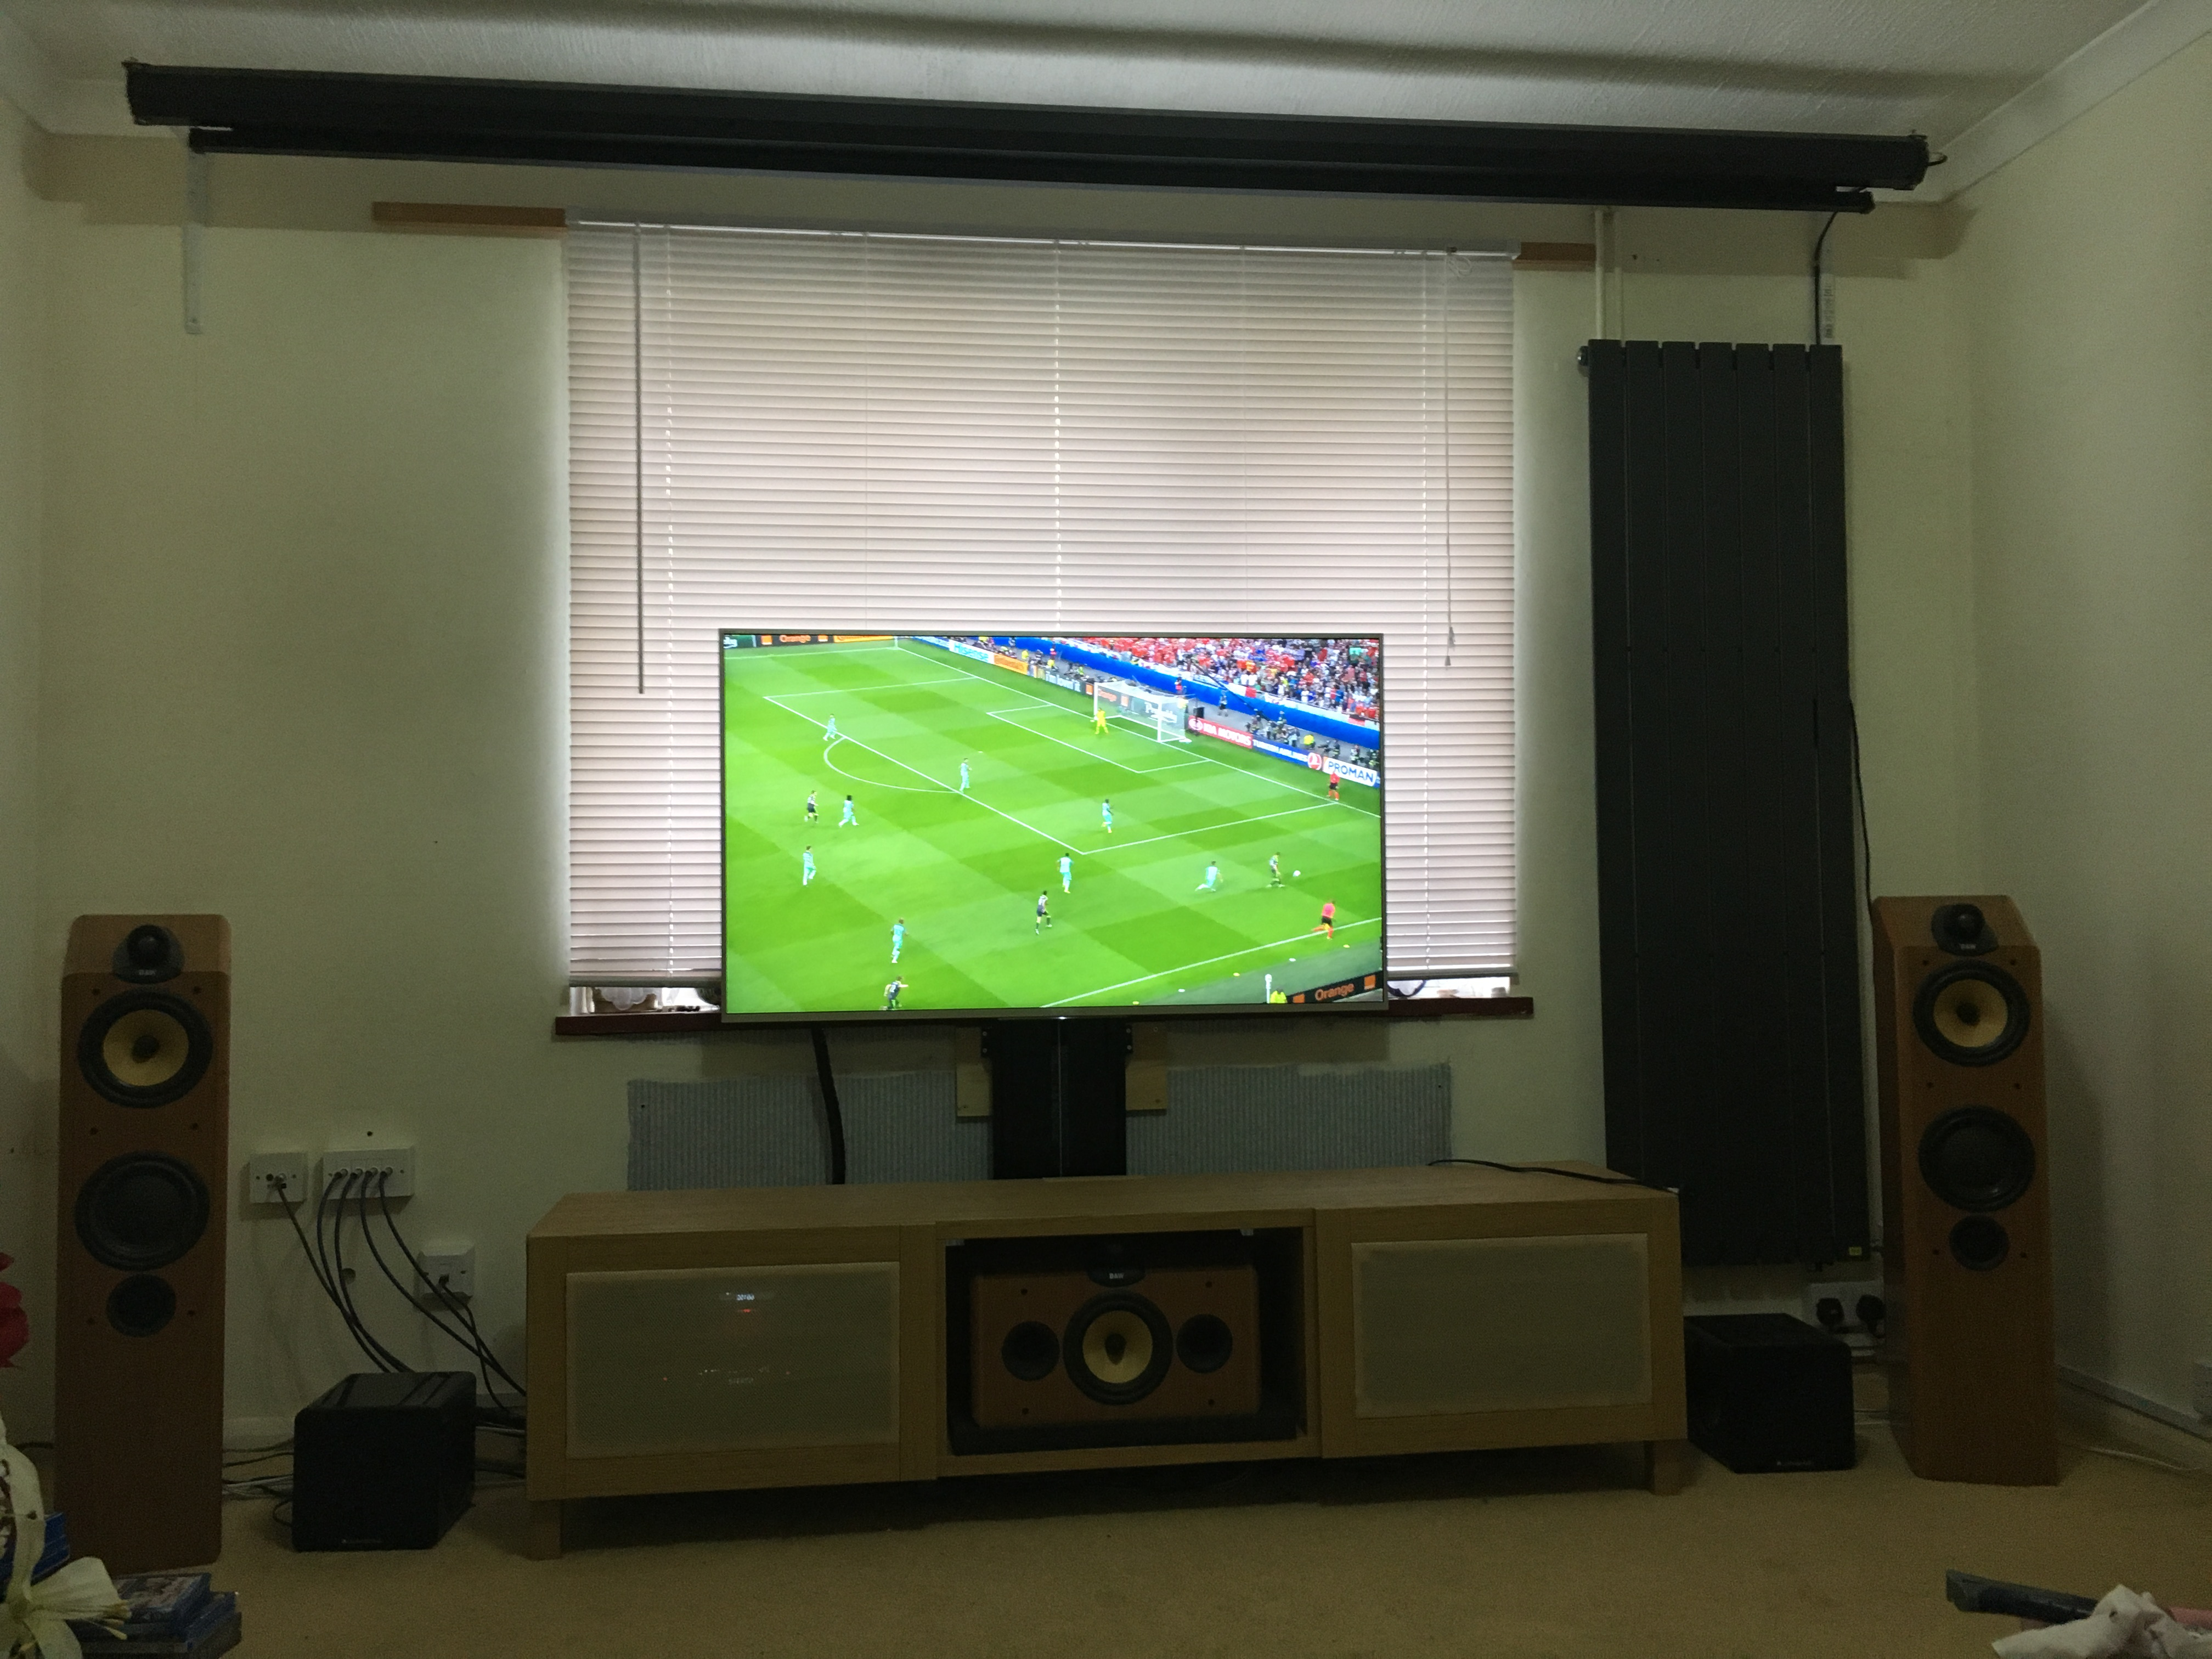 Placing A Tv Stand Infront Of A Radiator Avforums